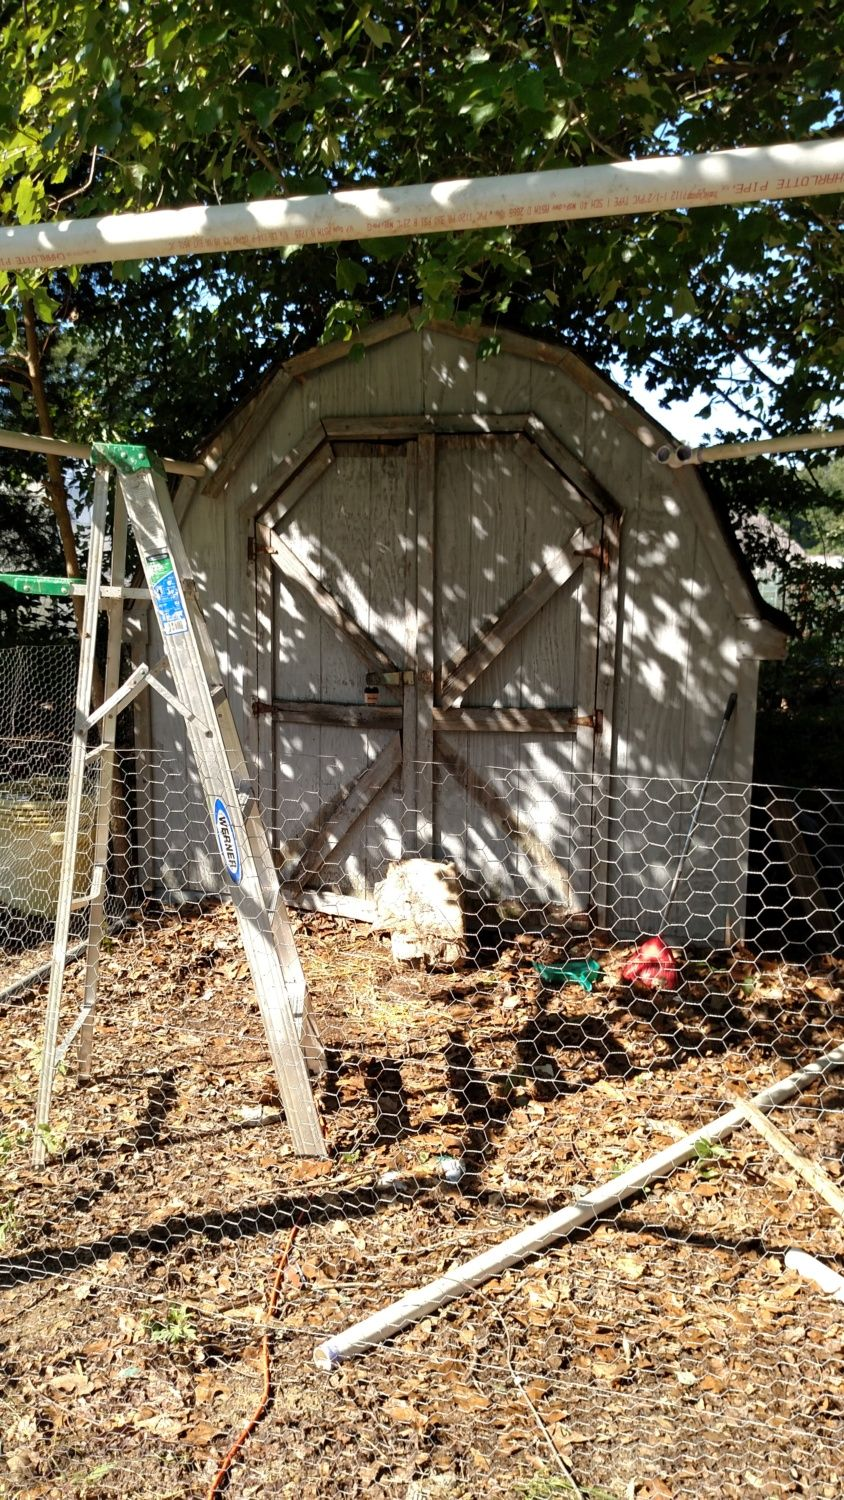 Shed in the process if conversion to a coop. 8/22/15